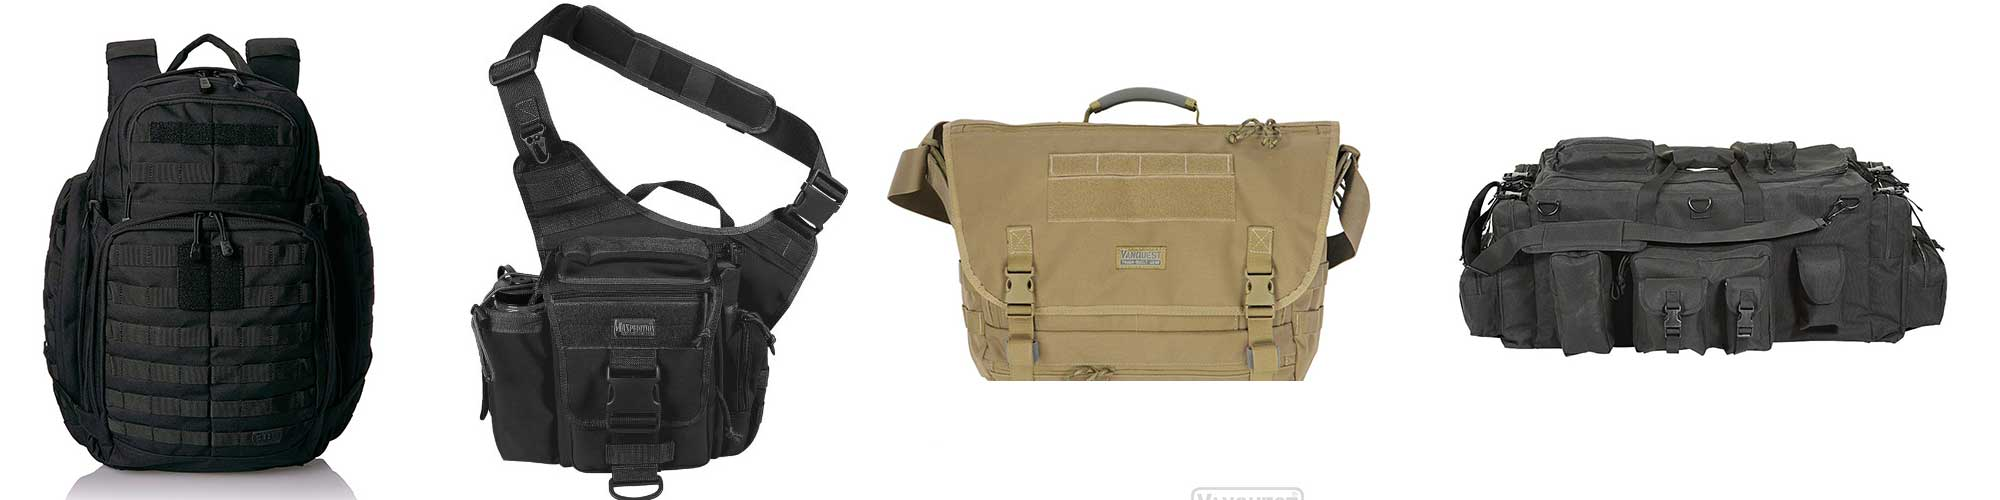 bug out bag styles